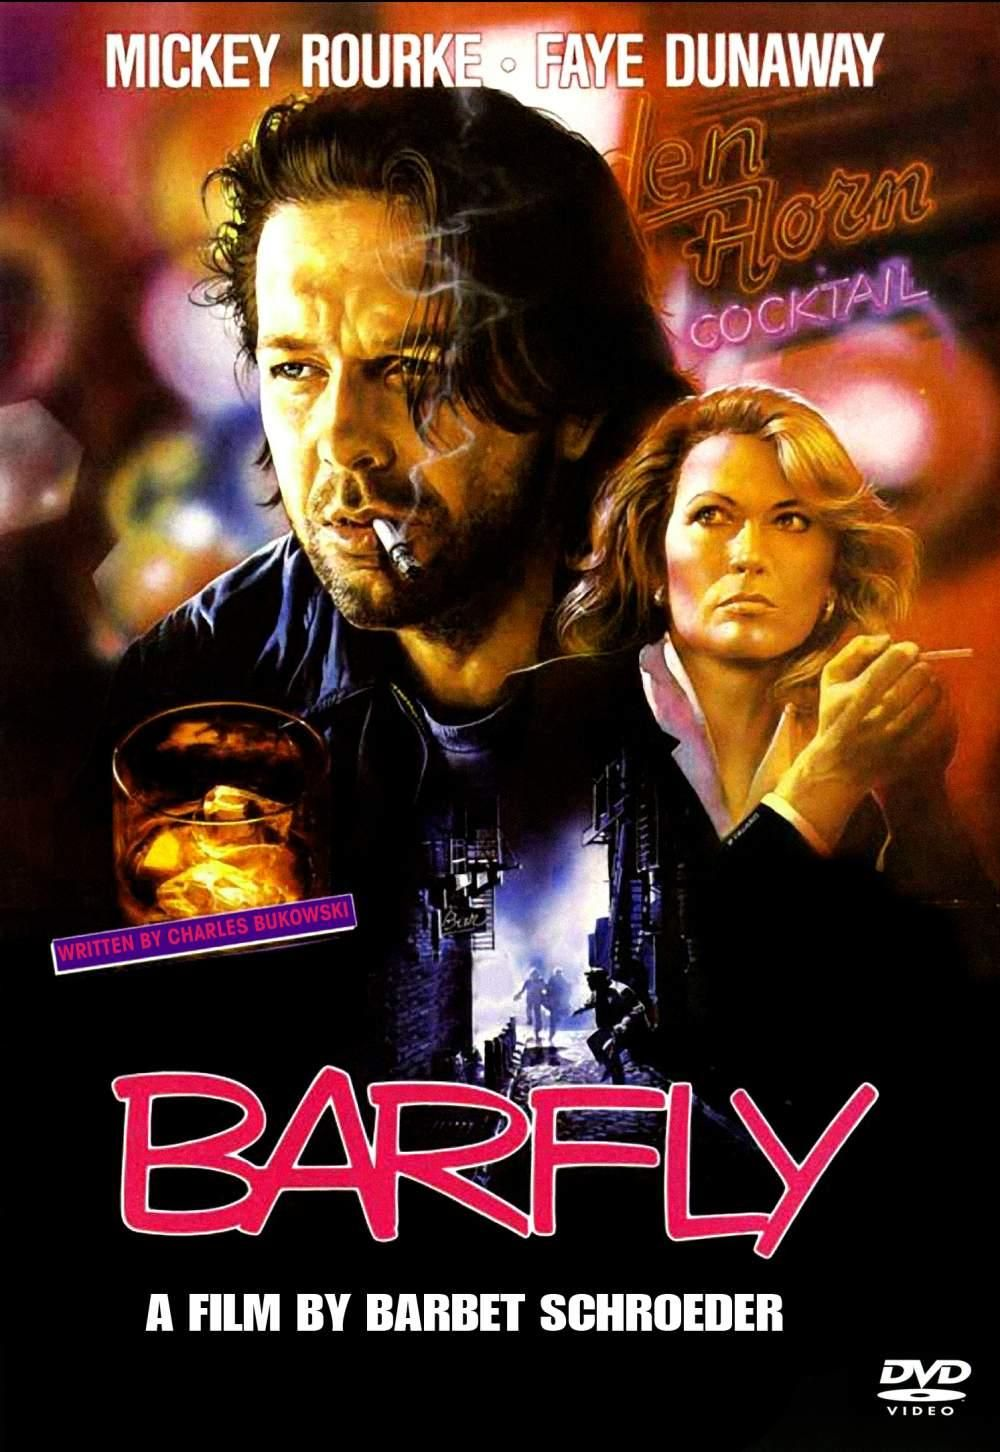 Barfly (1987) - Directed by: Barbet SchroederStarring: Mickey Rourke, Faye Dunaway, Alice KrigeRated: RRunning Time: 1 h 40 mTMM Score: 4 stars out of 5STRENGTHS: Writing, ActingWEAKNESSES: Subject Matter